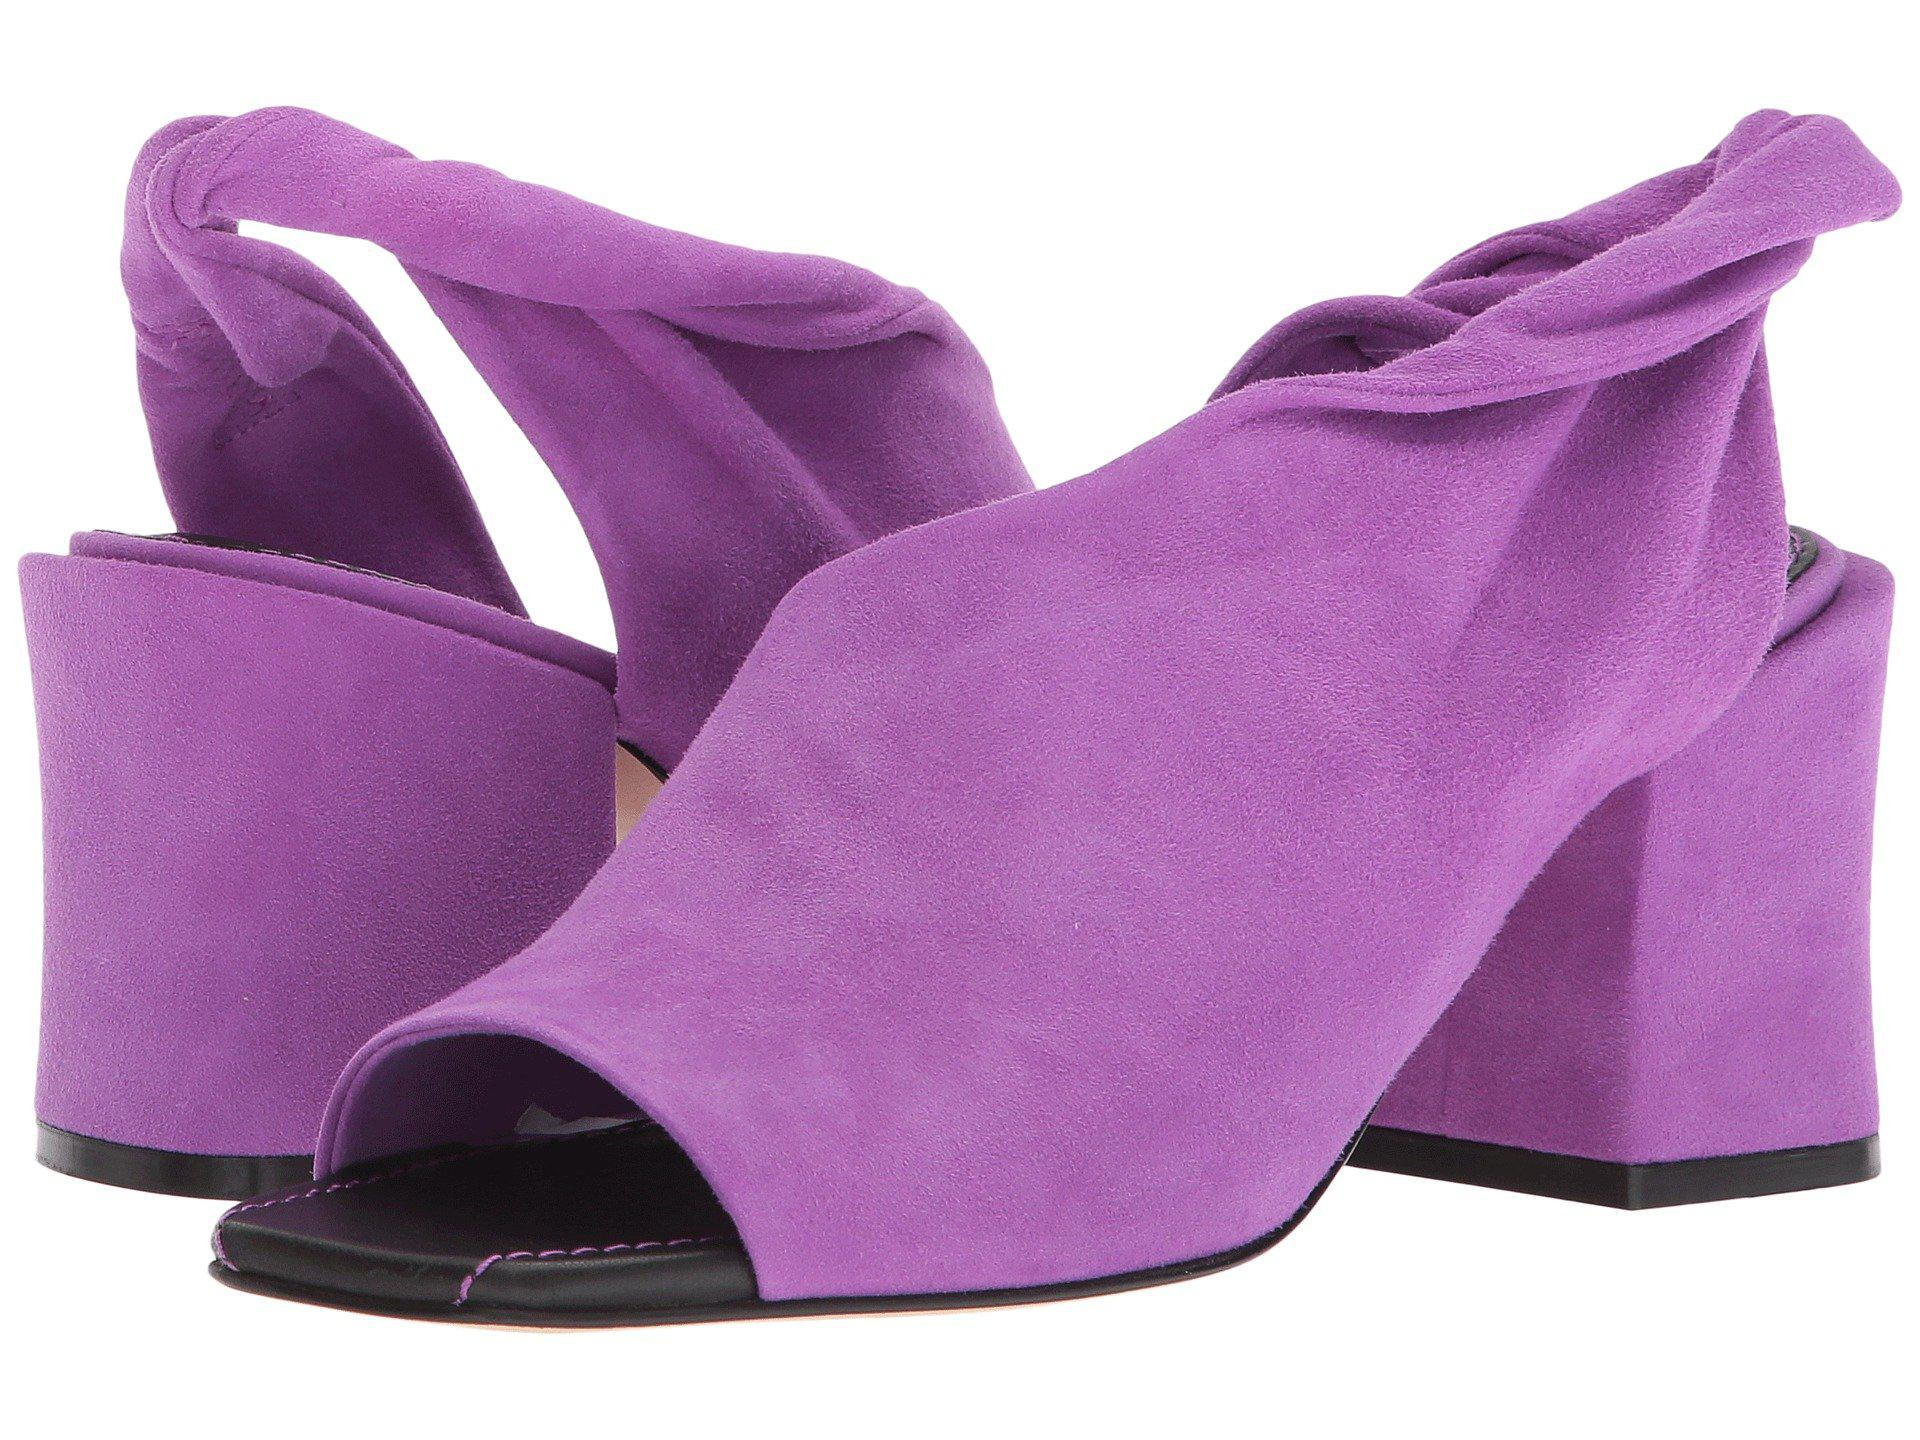 edc2ab0336d9 Lyst - Sigerson Morrison Lenny in Purple - Save 70%